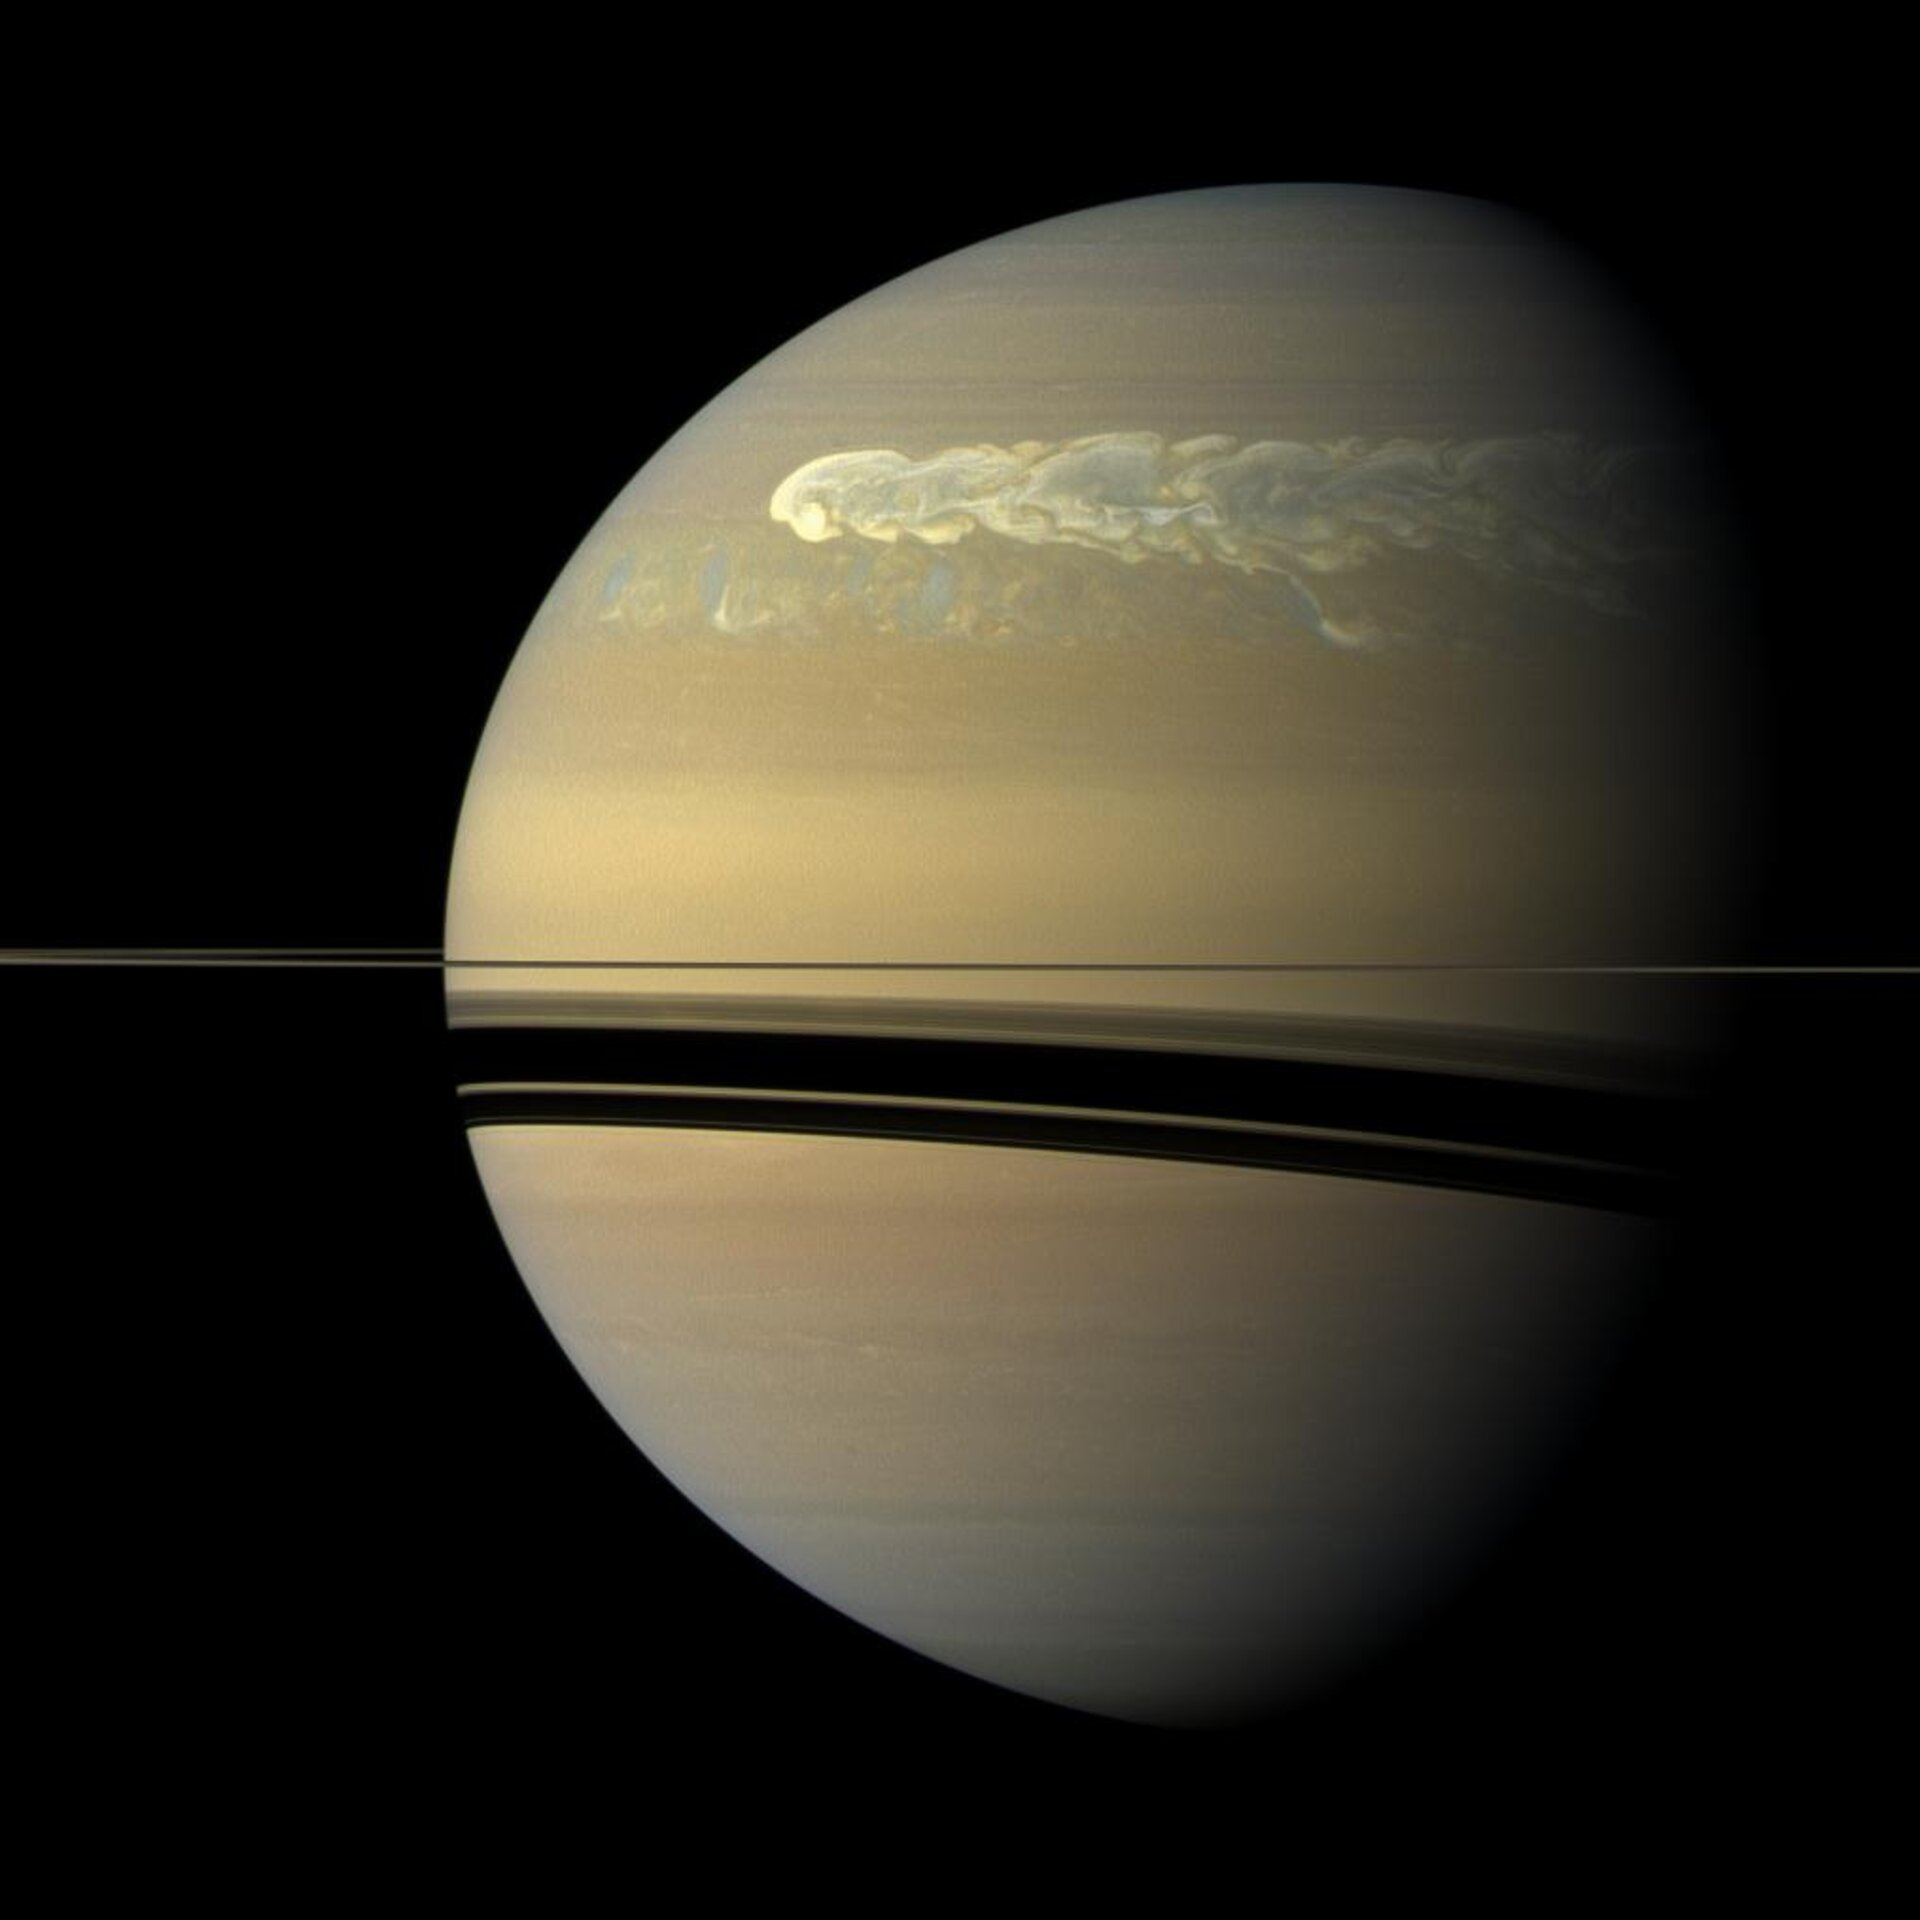 Saturn's greatest storm